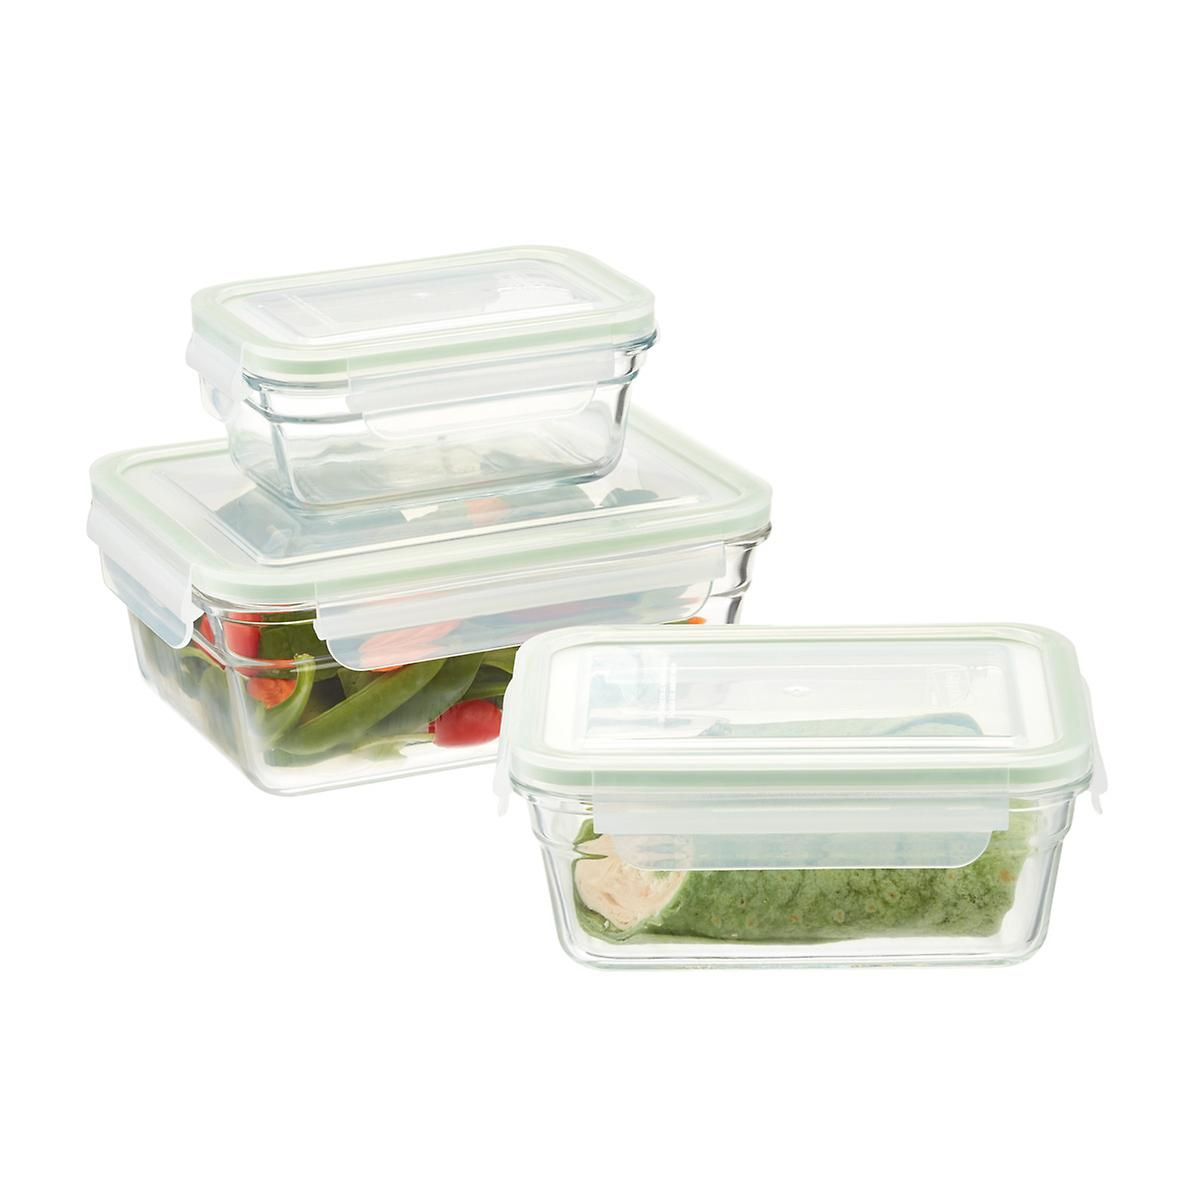 Glasslock Rectangular Food Containers with Lids ...